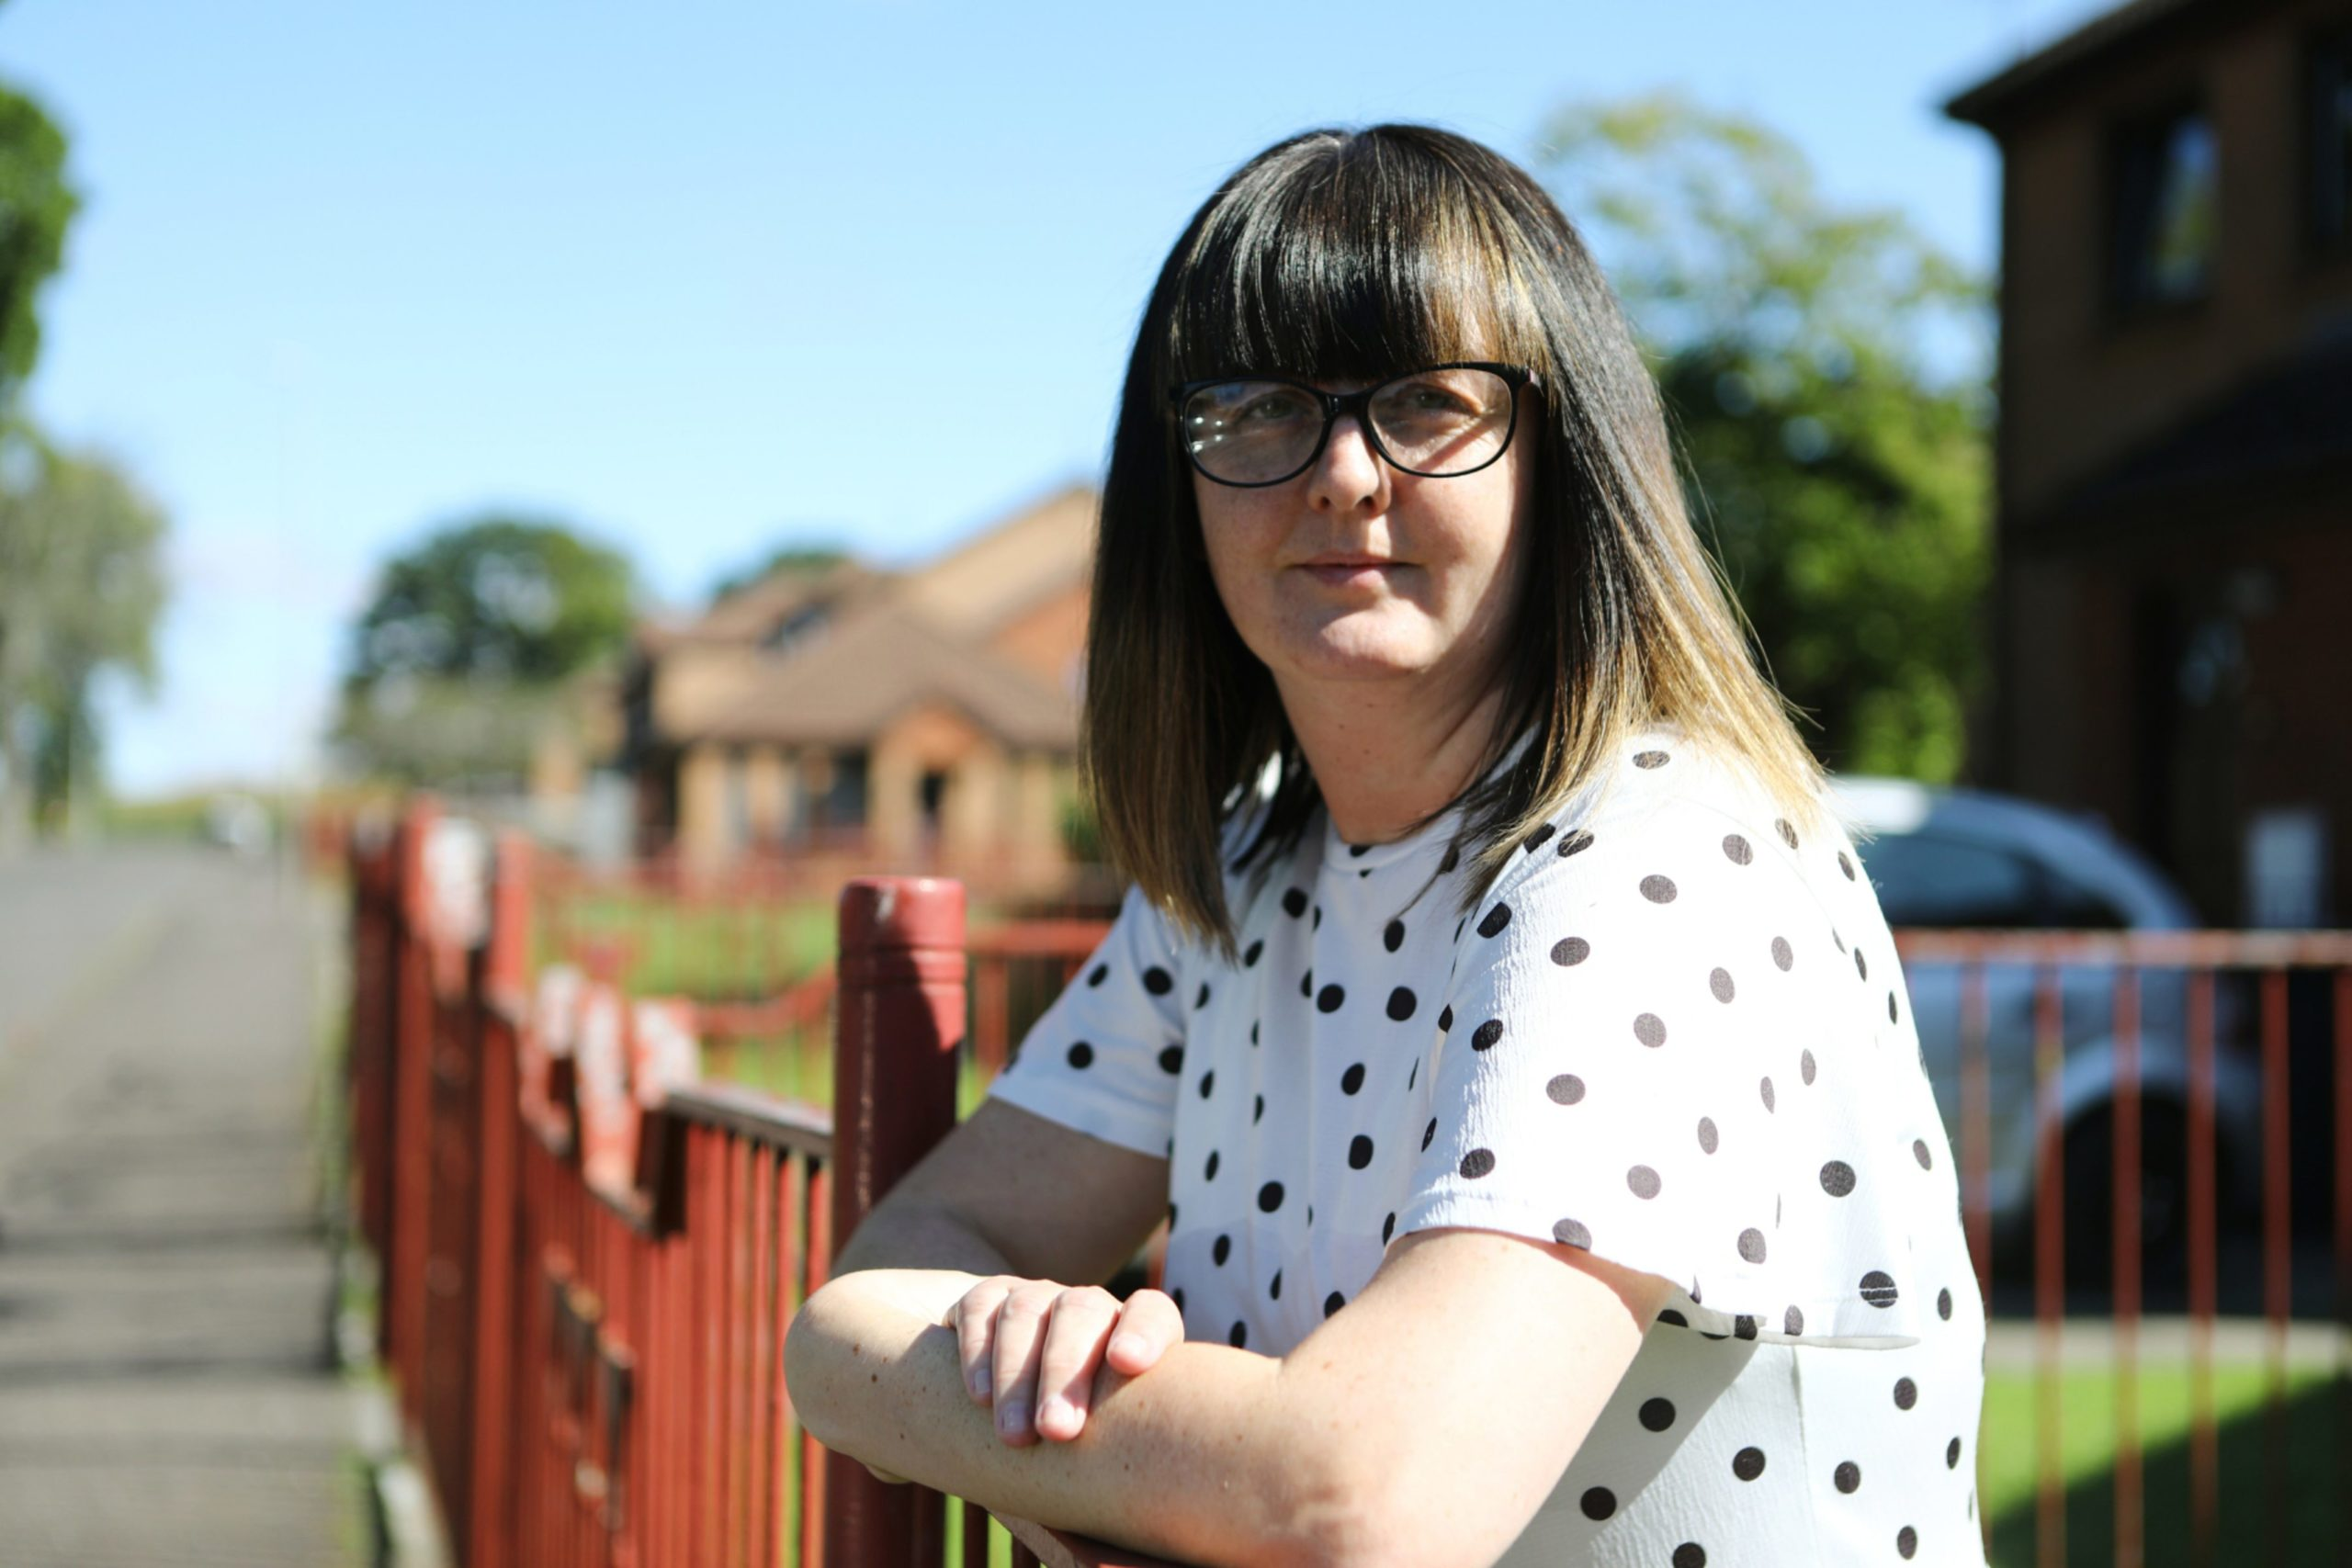 Natalie Sturrock outside her home in Dundee today, where Sanctuary Housing sent someone from Aberdeen to fix her smoke alarm, with no warning, and despite a localised Covid-19 lockdown in the Granite City.